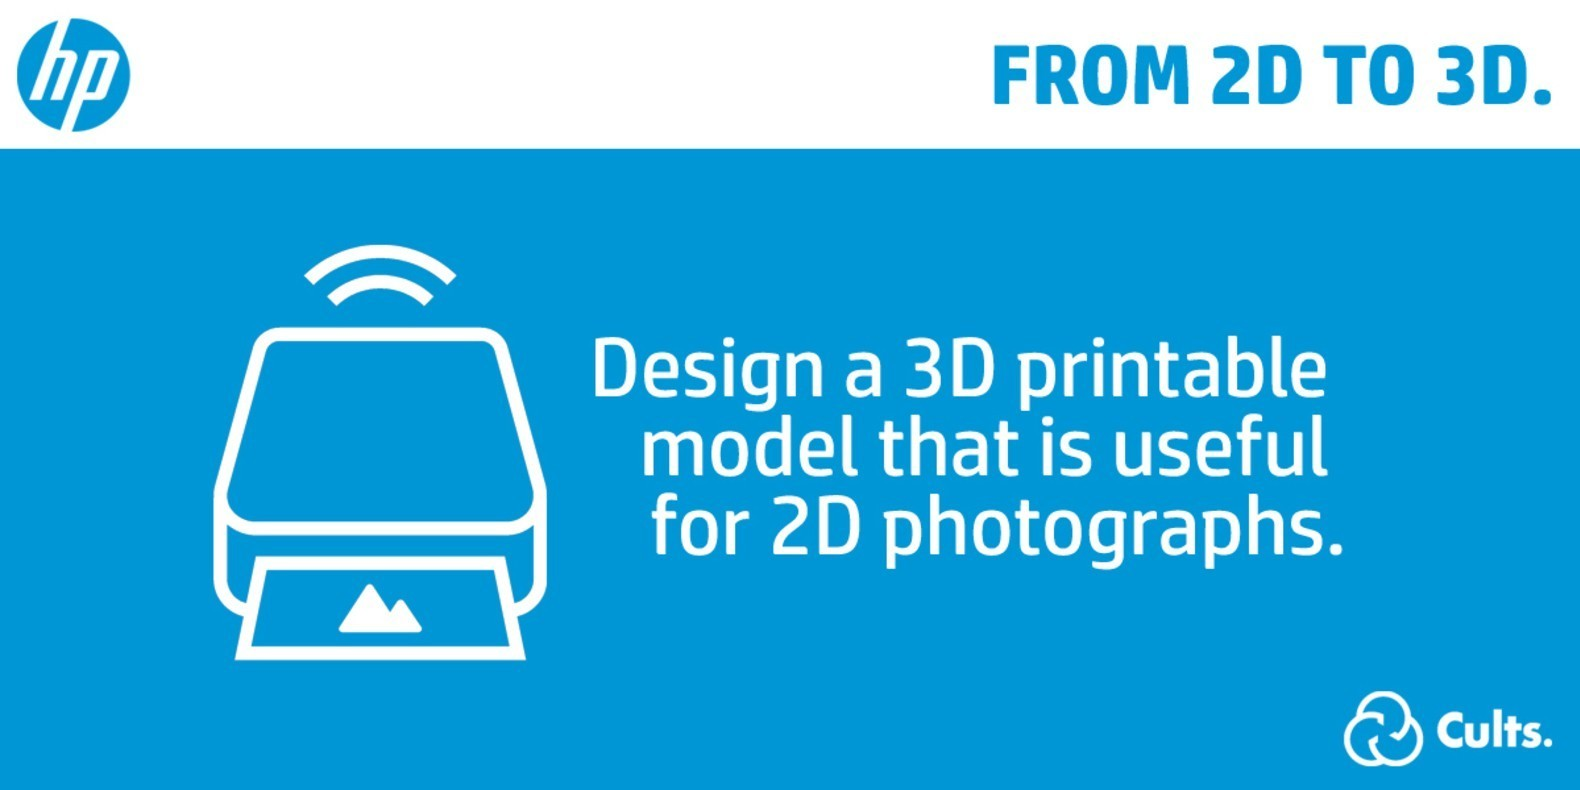 From 2D to 3D Contest - HP 3D Printing